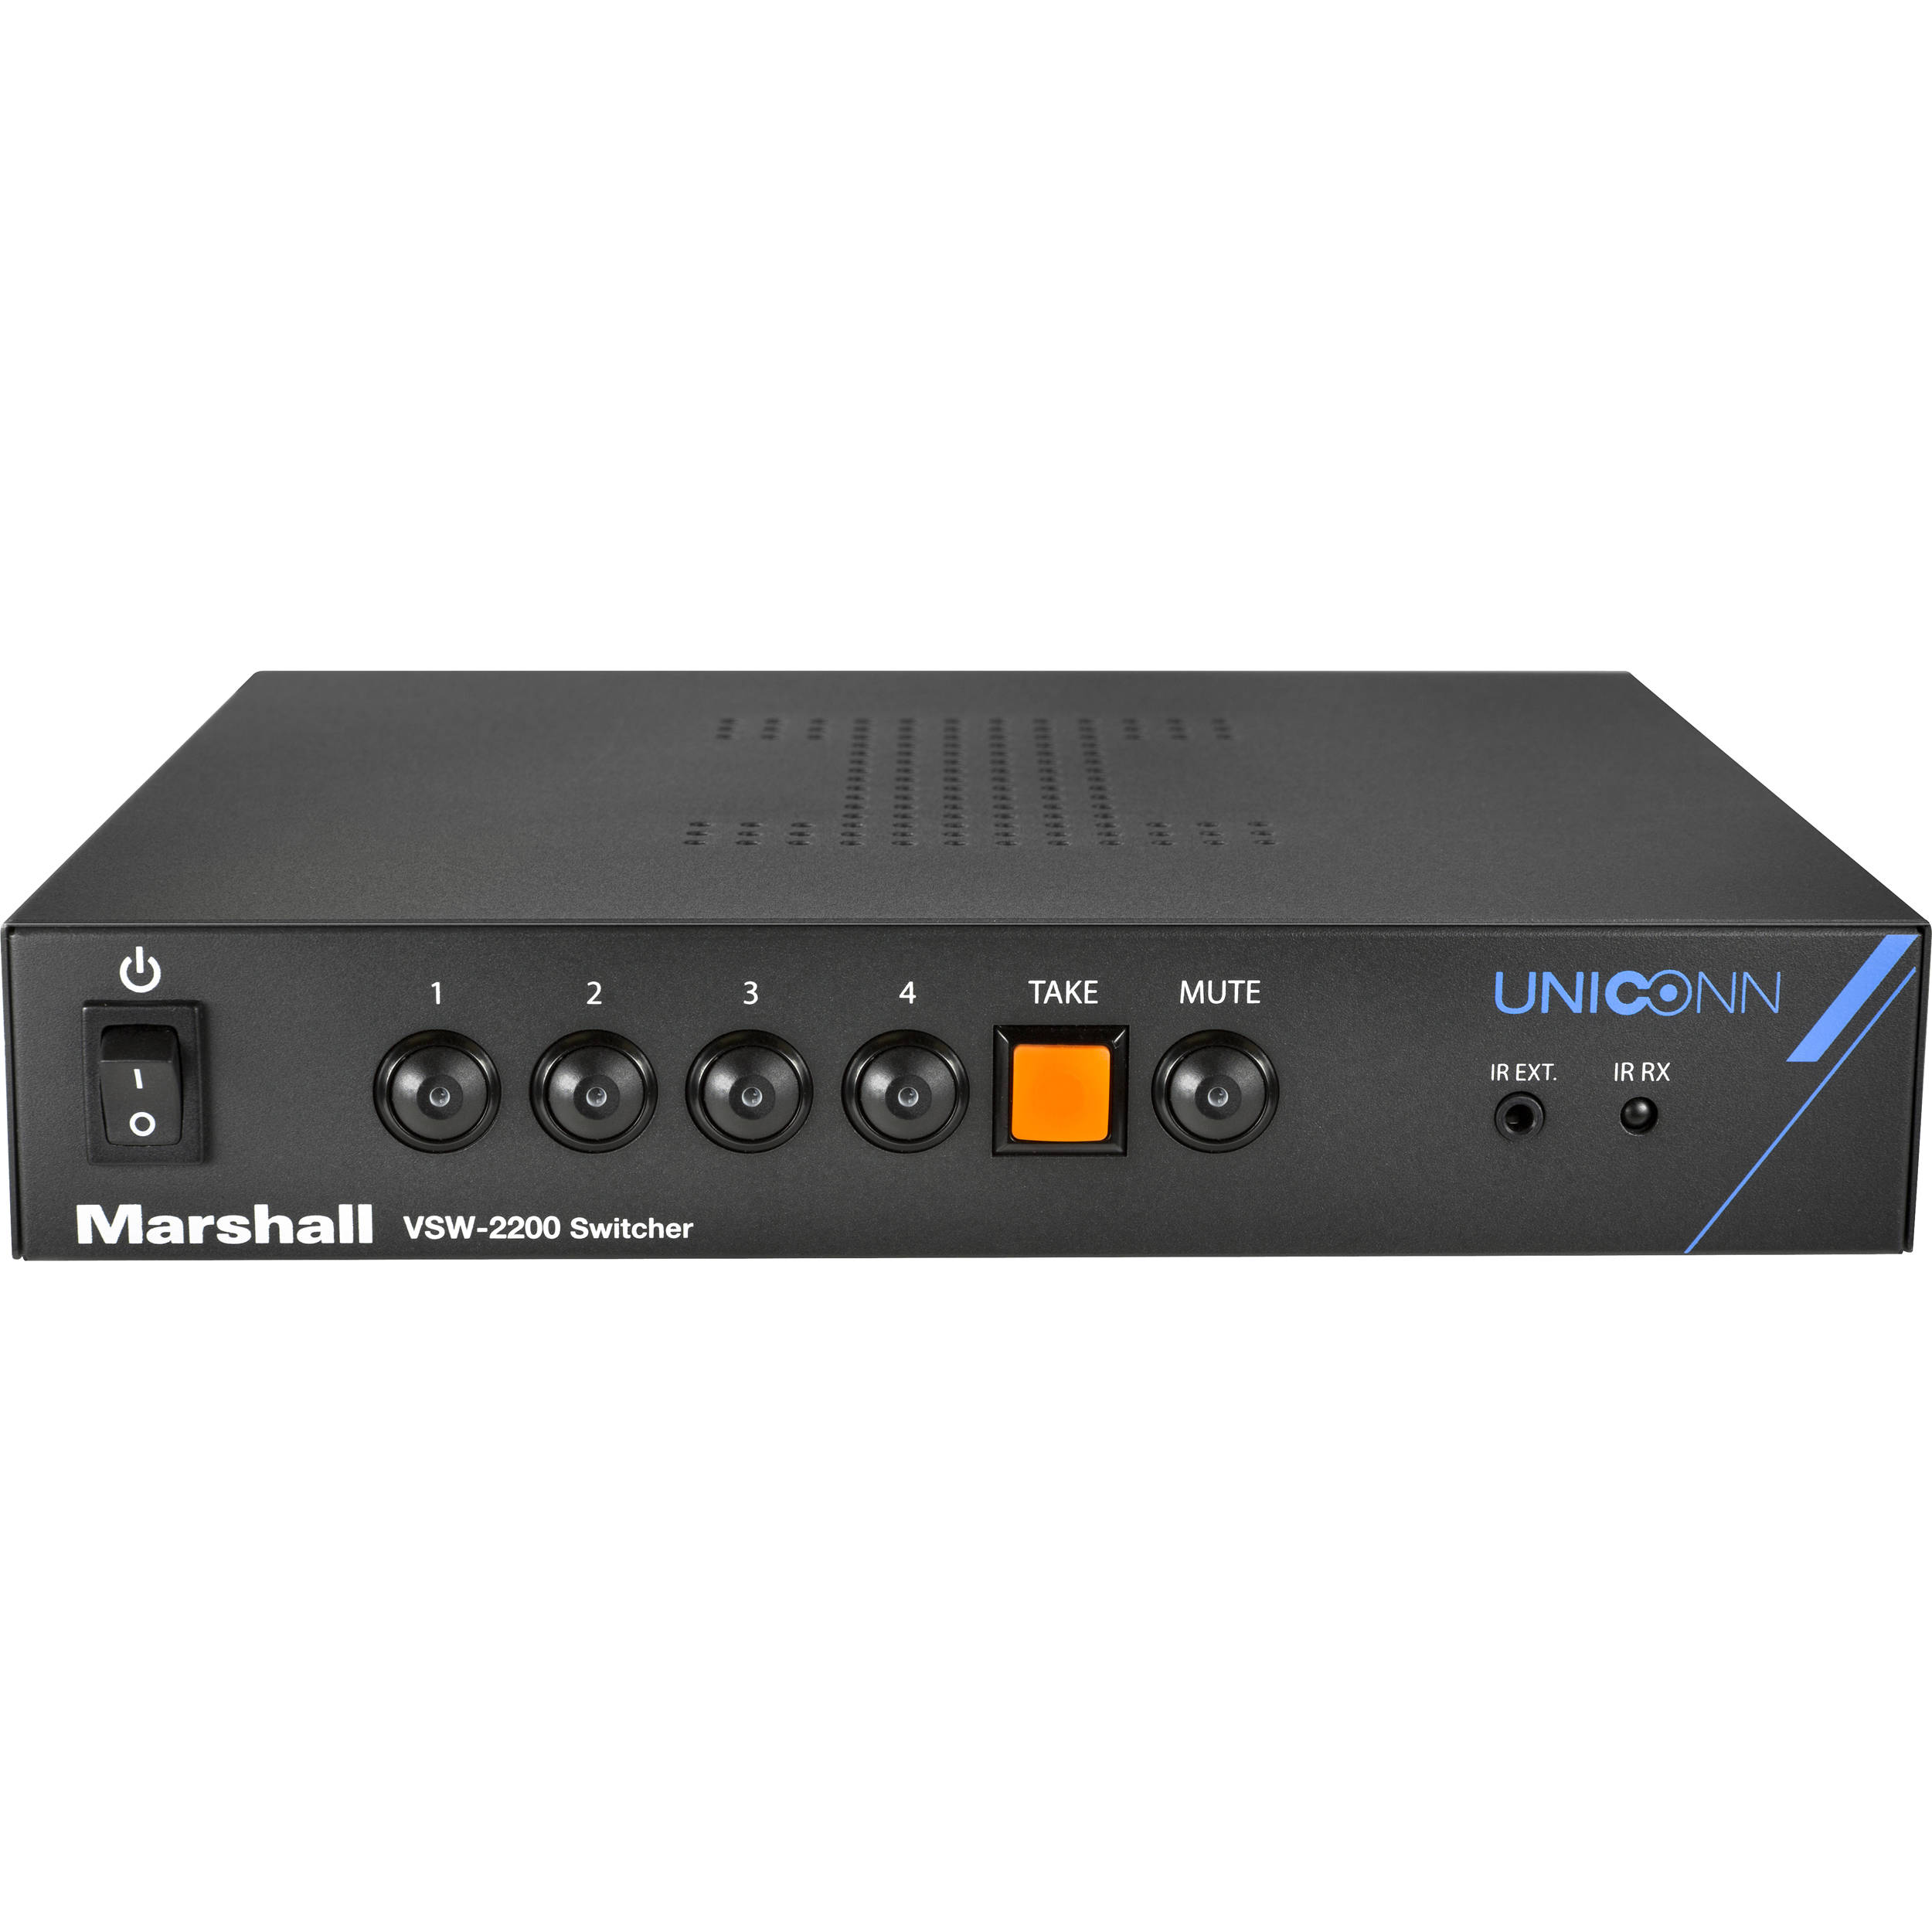 Marshall Electronics Vsw 2200 4x1 Seamless 3g Sdi Bh Rbvhda8 Hd Sdsdi 1 Input 8 Output Video Distribution Amplifier Switcher